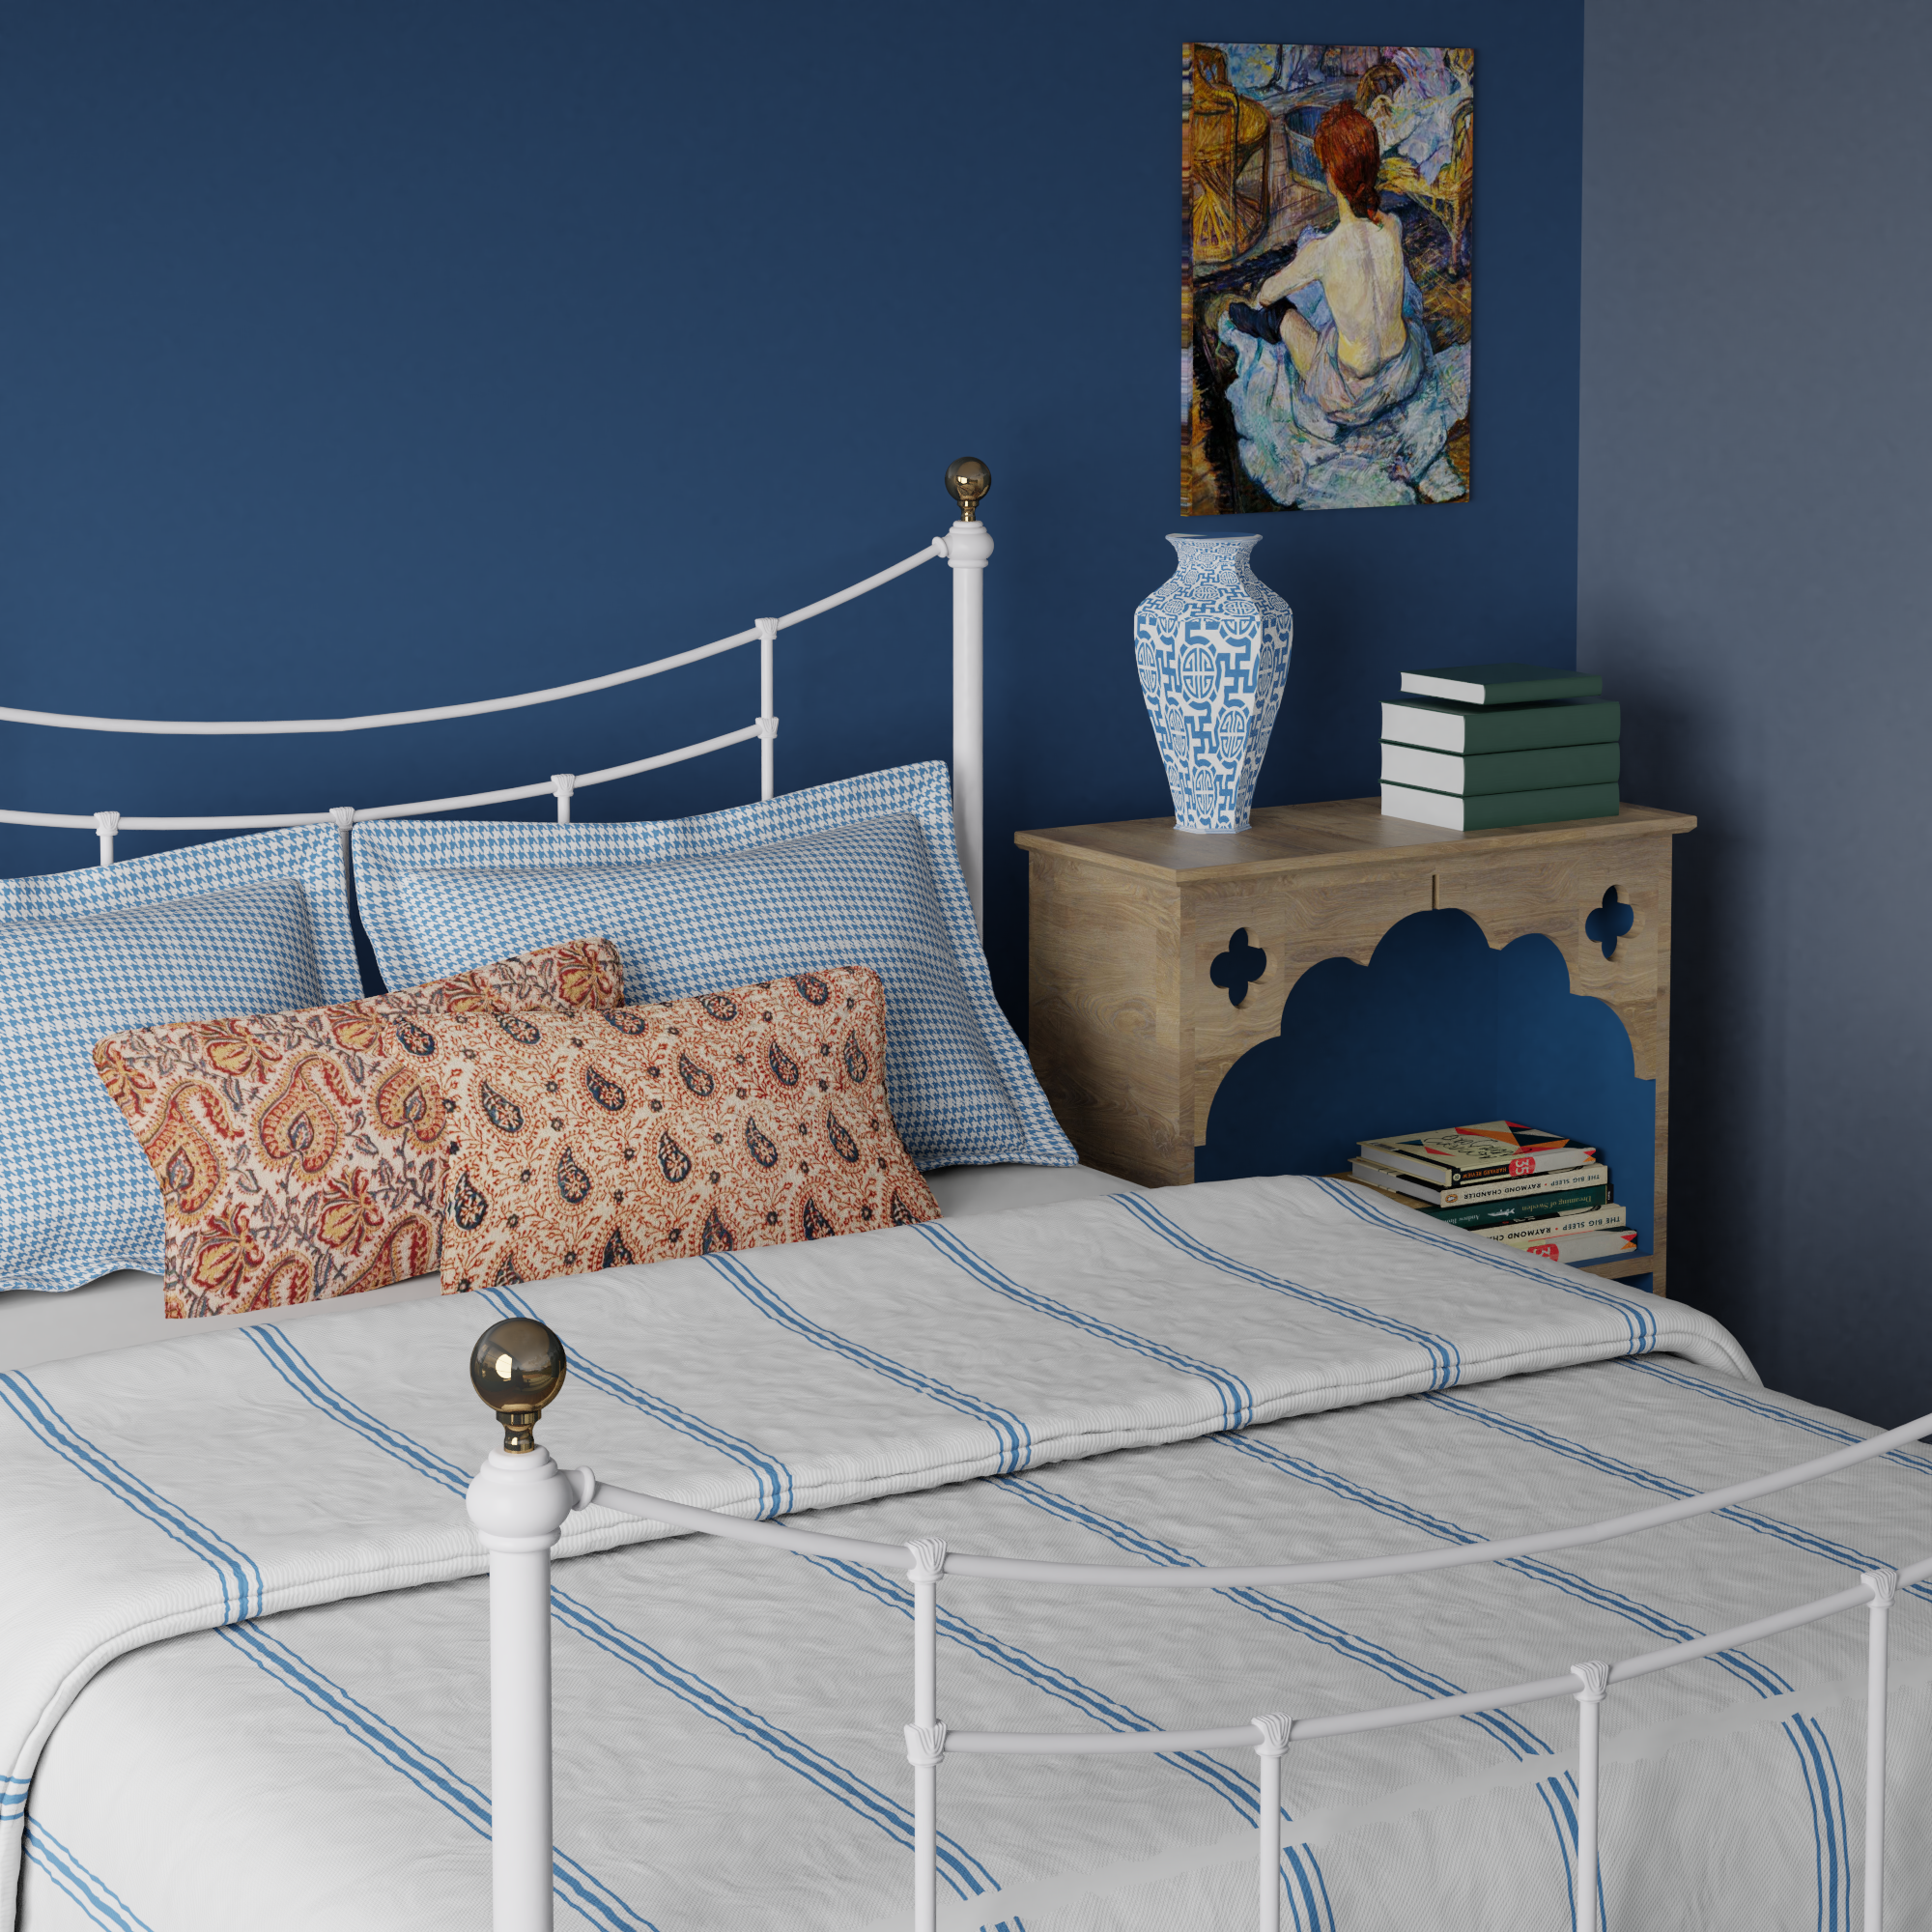 Virginia iron bed in a blue bedroom